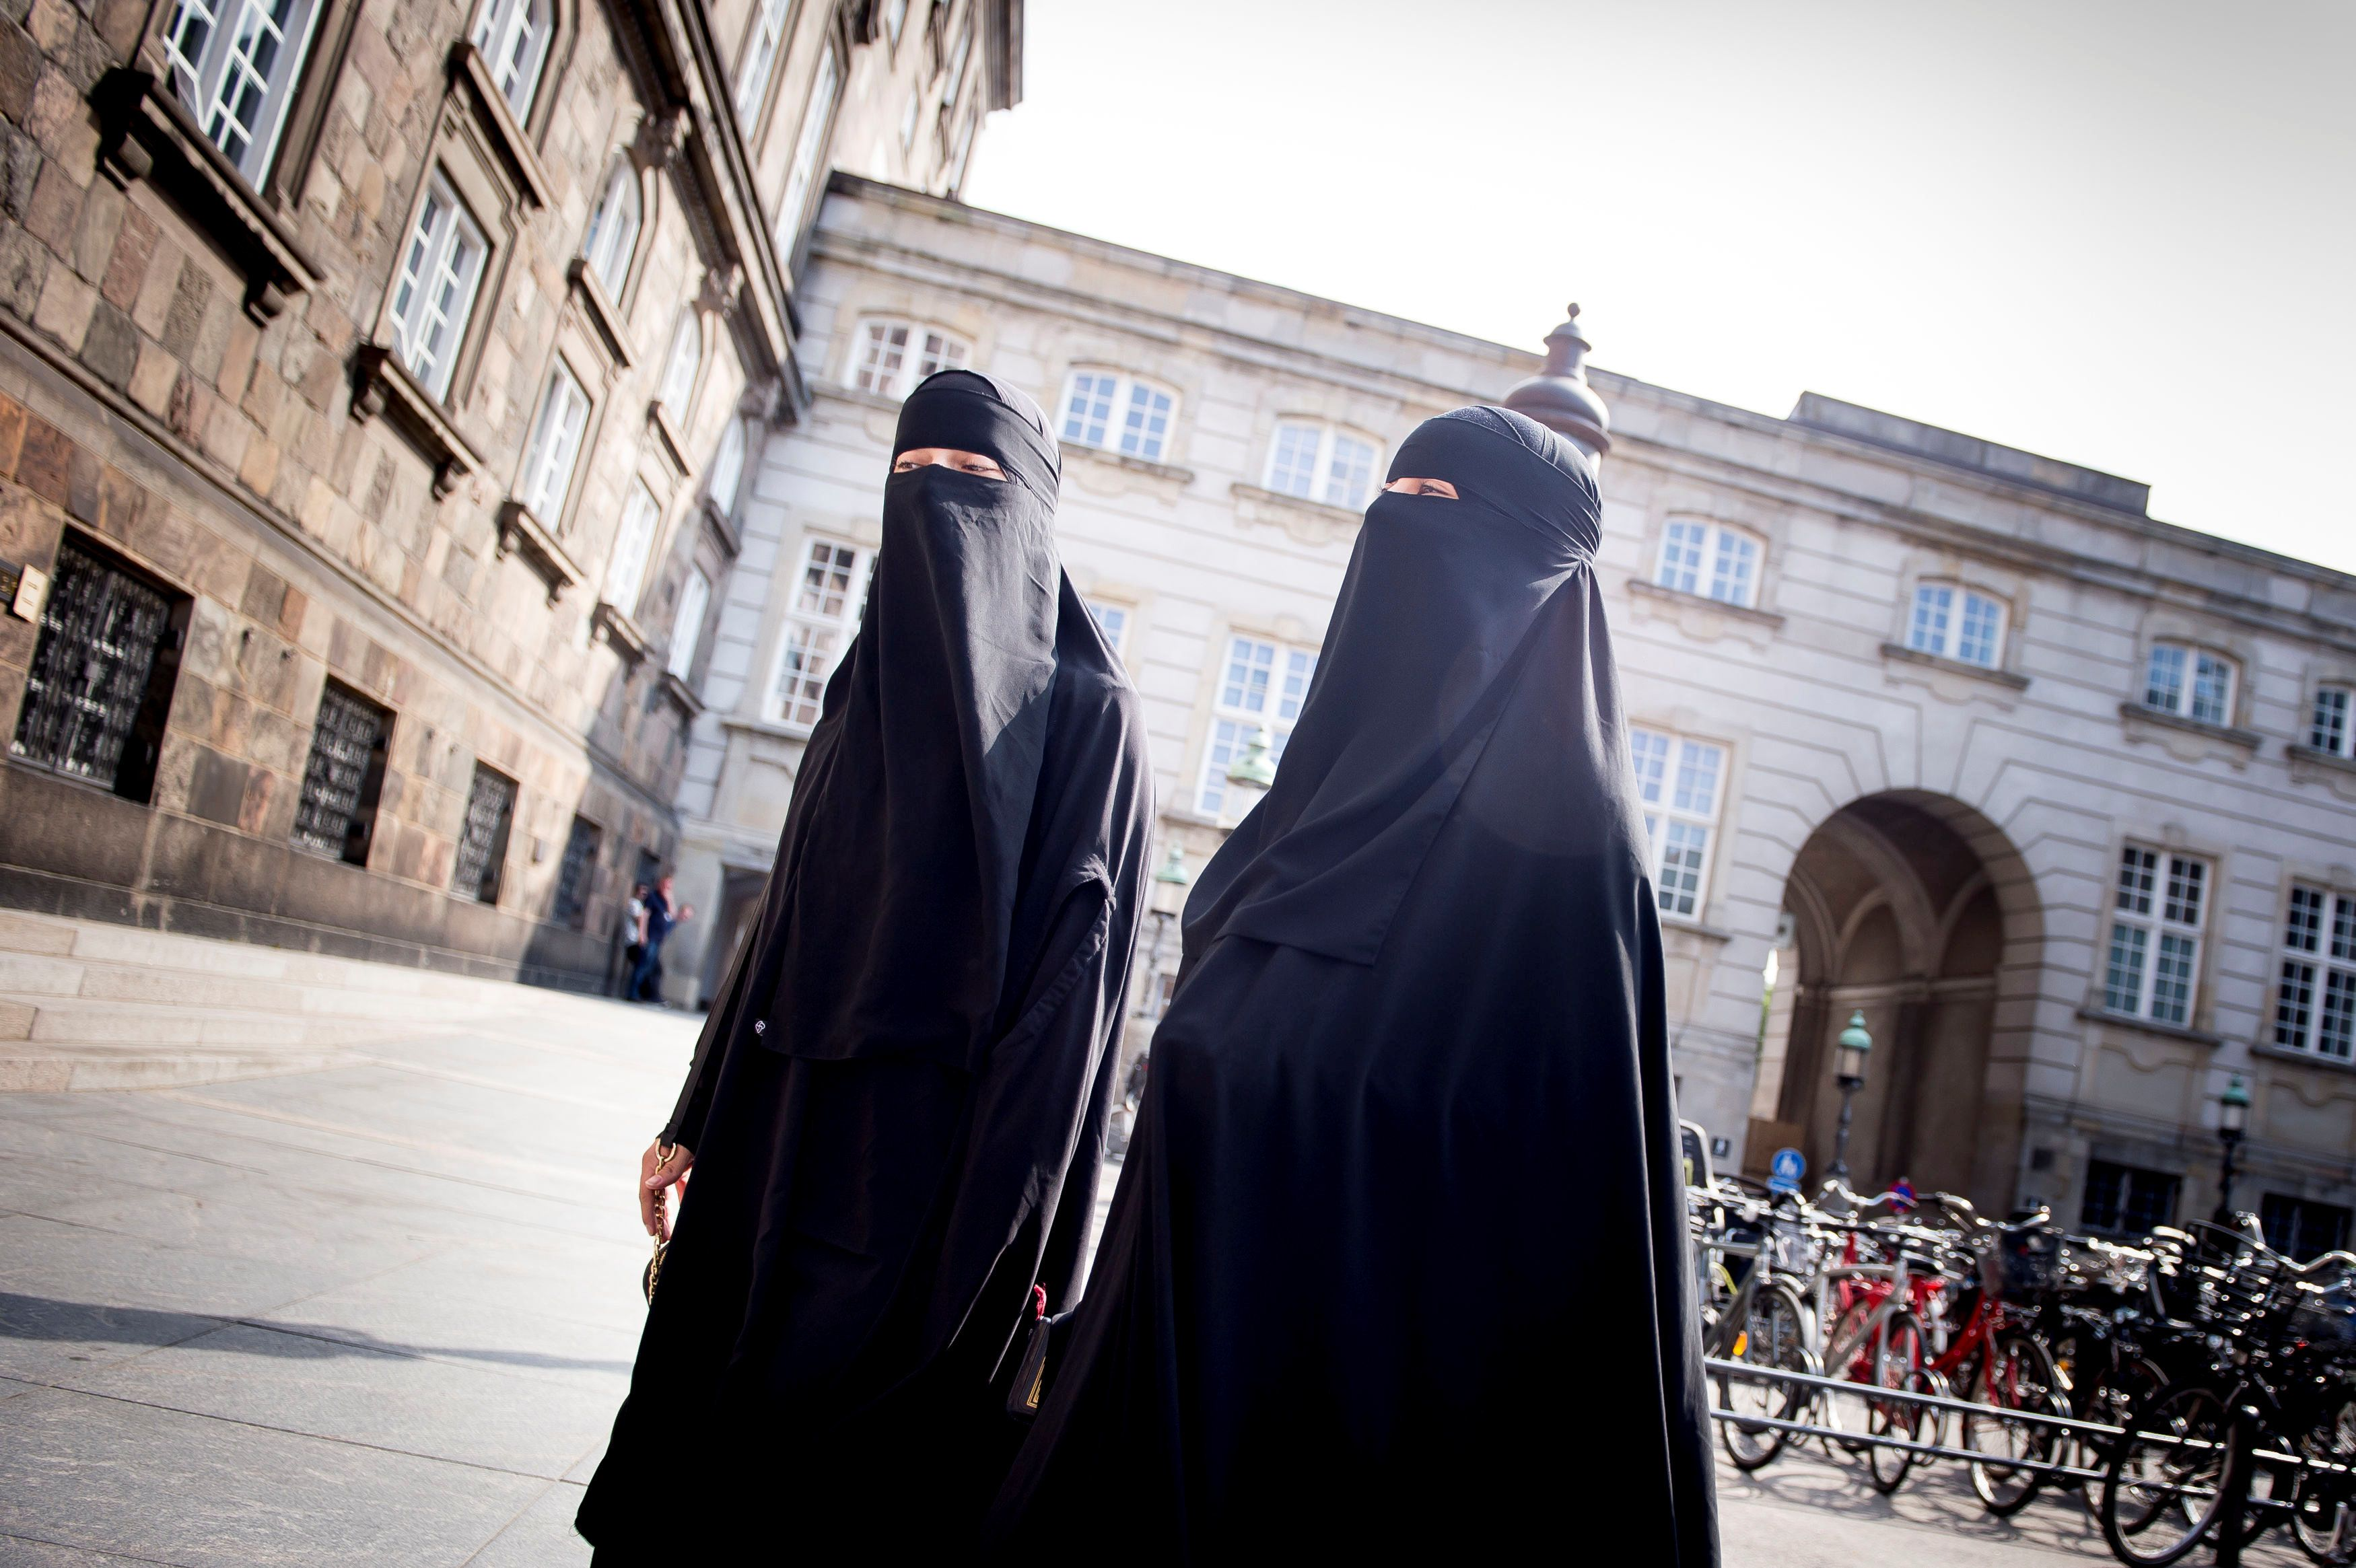 Women in niqab are pictured after the Danish Parliament banned the wearing of face veils in public, at Christiansborg Palace in Copenhagen, Denmark, May 31, 2018. Ritzau Scanpix/Mads Claus Rasmussen/via REUTERS   ATTENTION EDITORS - THIS IMAGE WAS PROVIDED BY A THIRD PARTY. DENMARK OUT. NO COMMERCIAL OR EDITORIAL SALES IN DENMARK